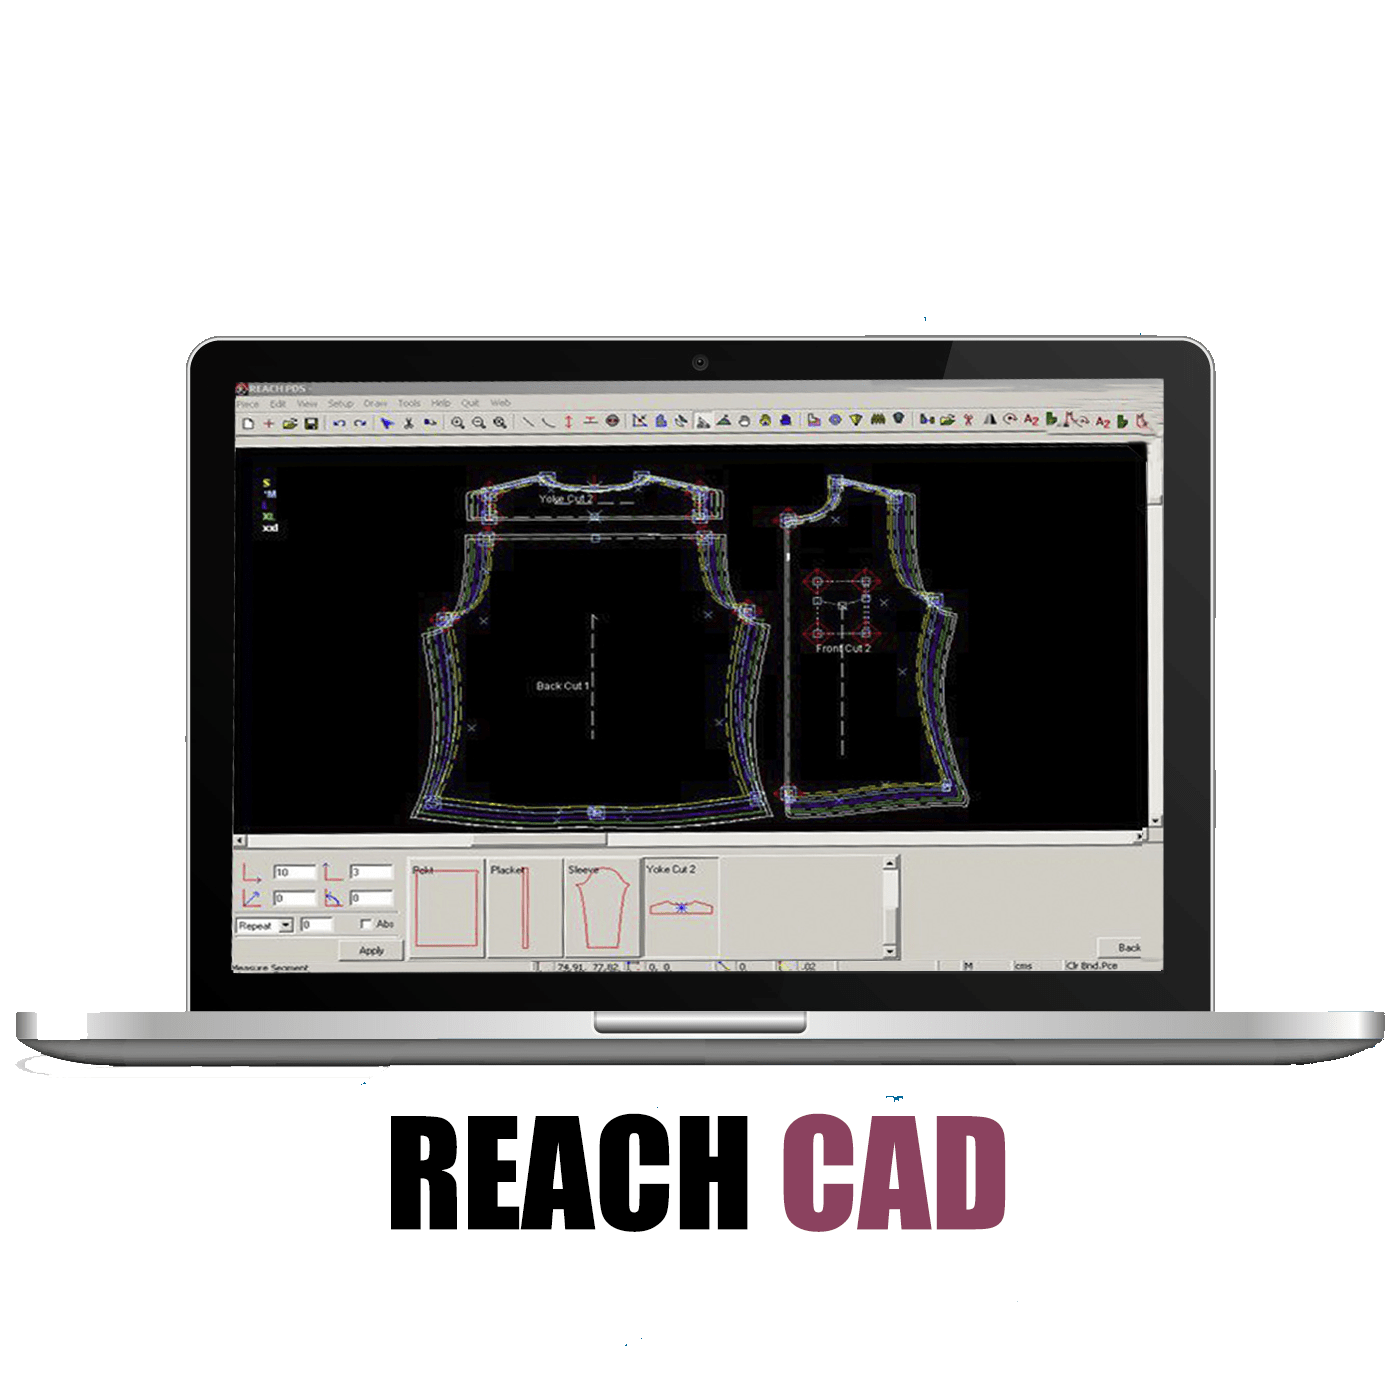 fashion-cad-reach-cad-1